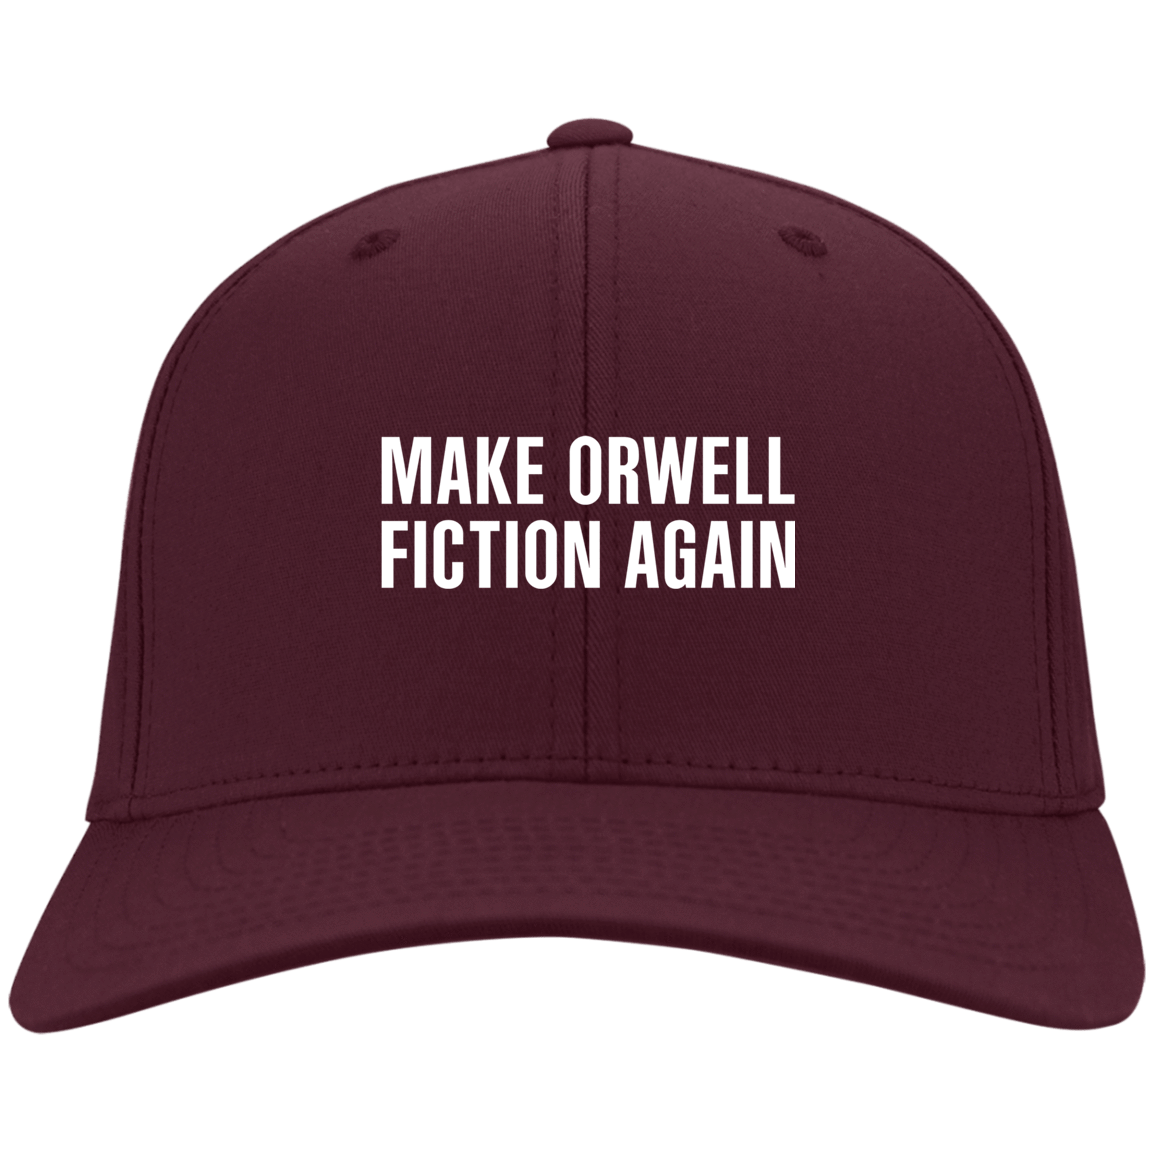 Make Orwell Fiction Again Hat 10-56-74169573-86 - Tee Ript